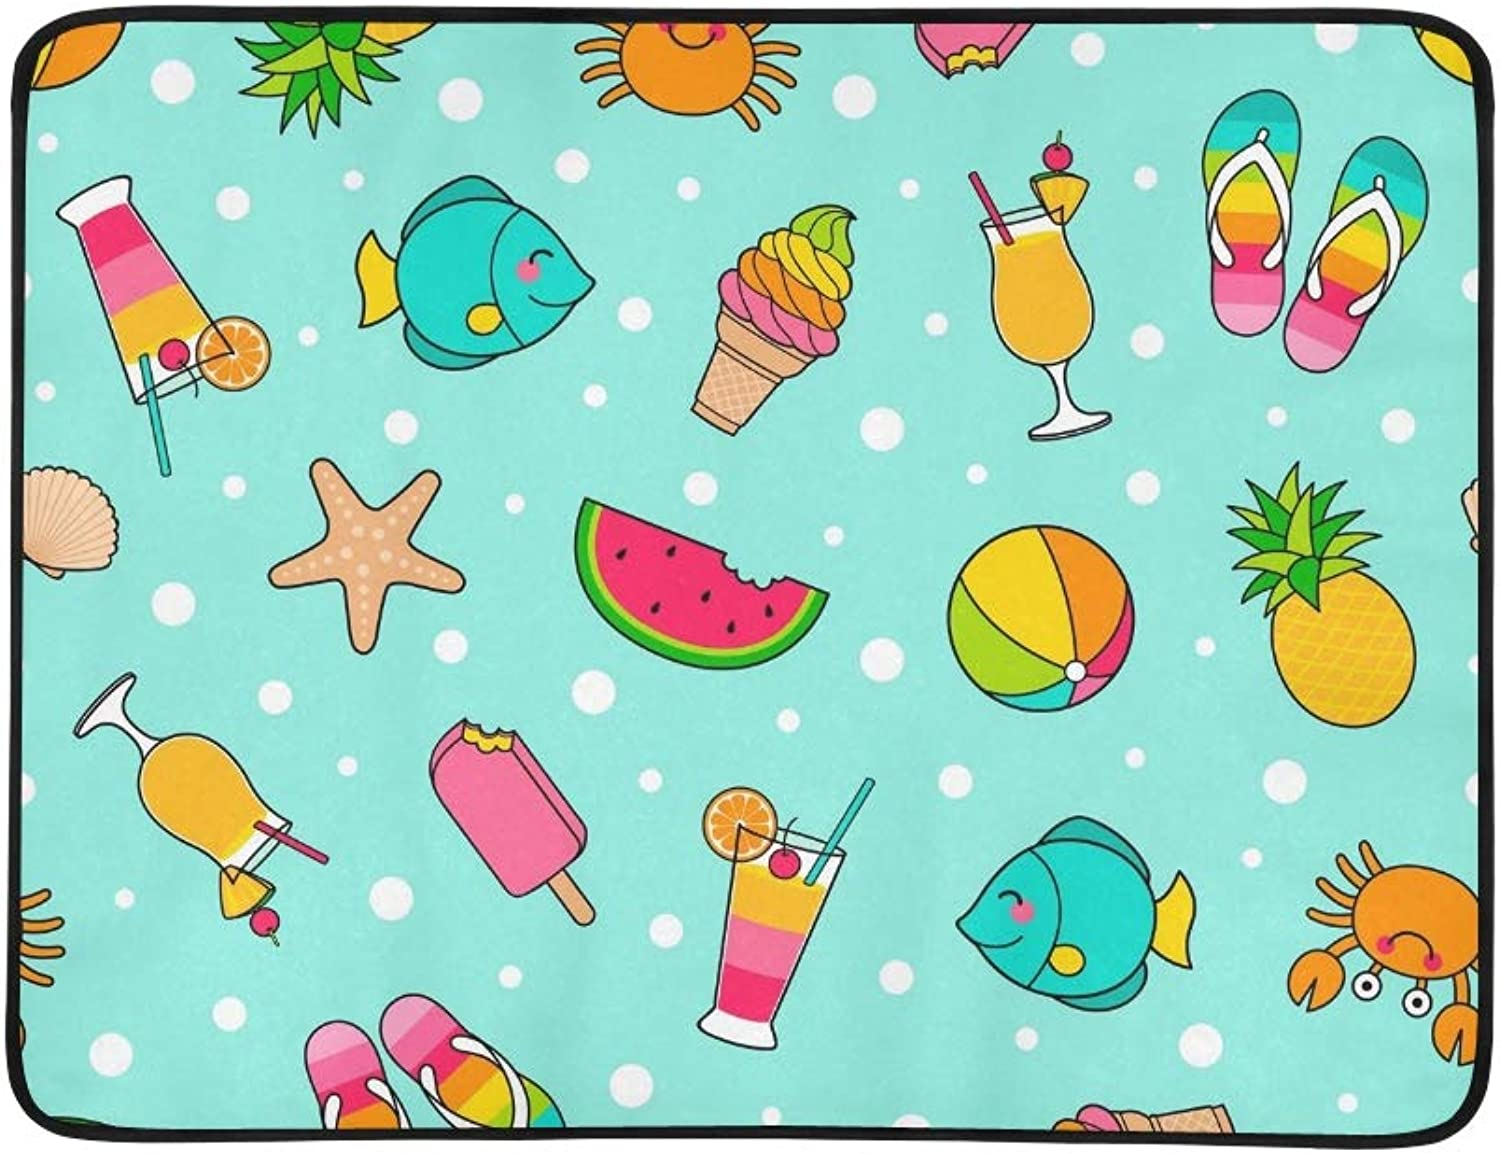 colorful Cute Cartoon Summer Portable and Foldable Blanket Mat 60x78 Inch Handy Mat for Camping Picnic Beach Indoor Outdoor Travel